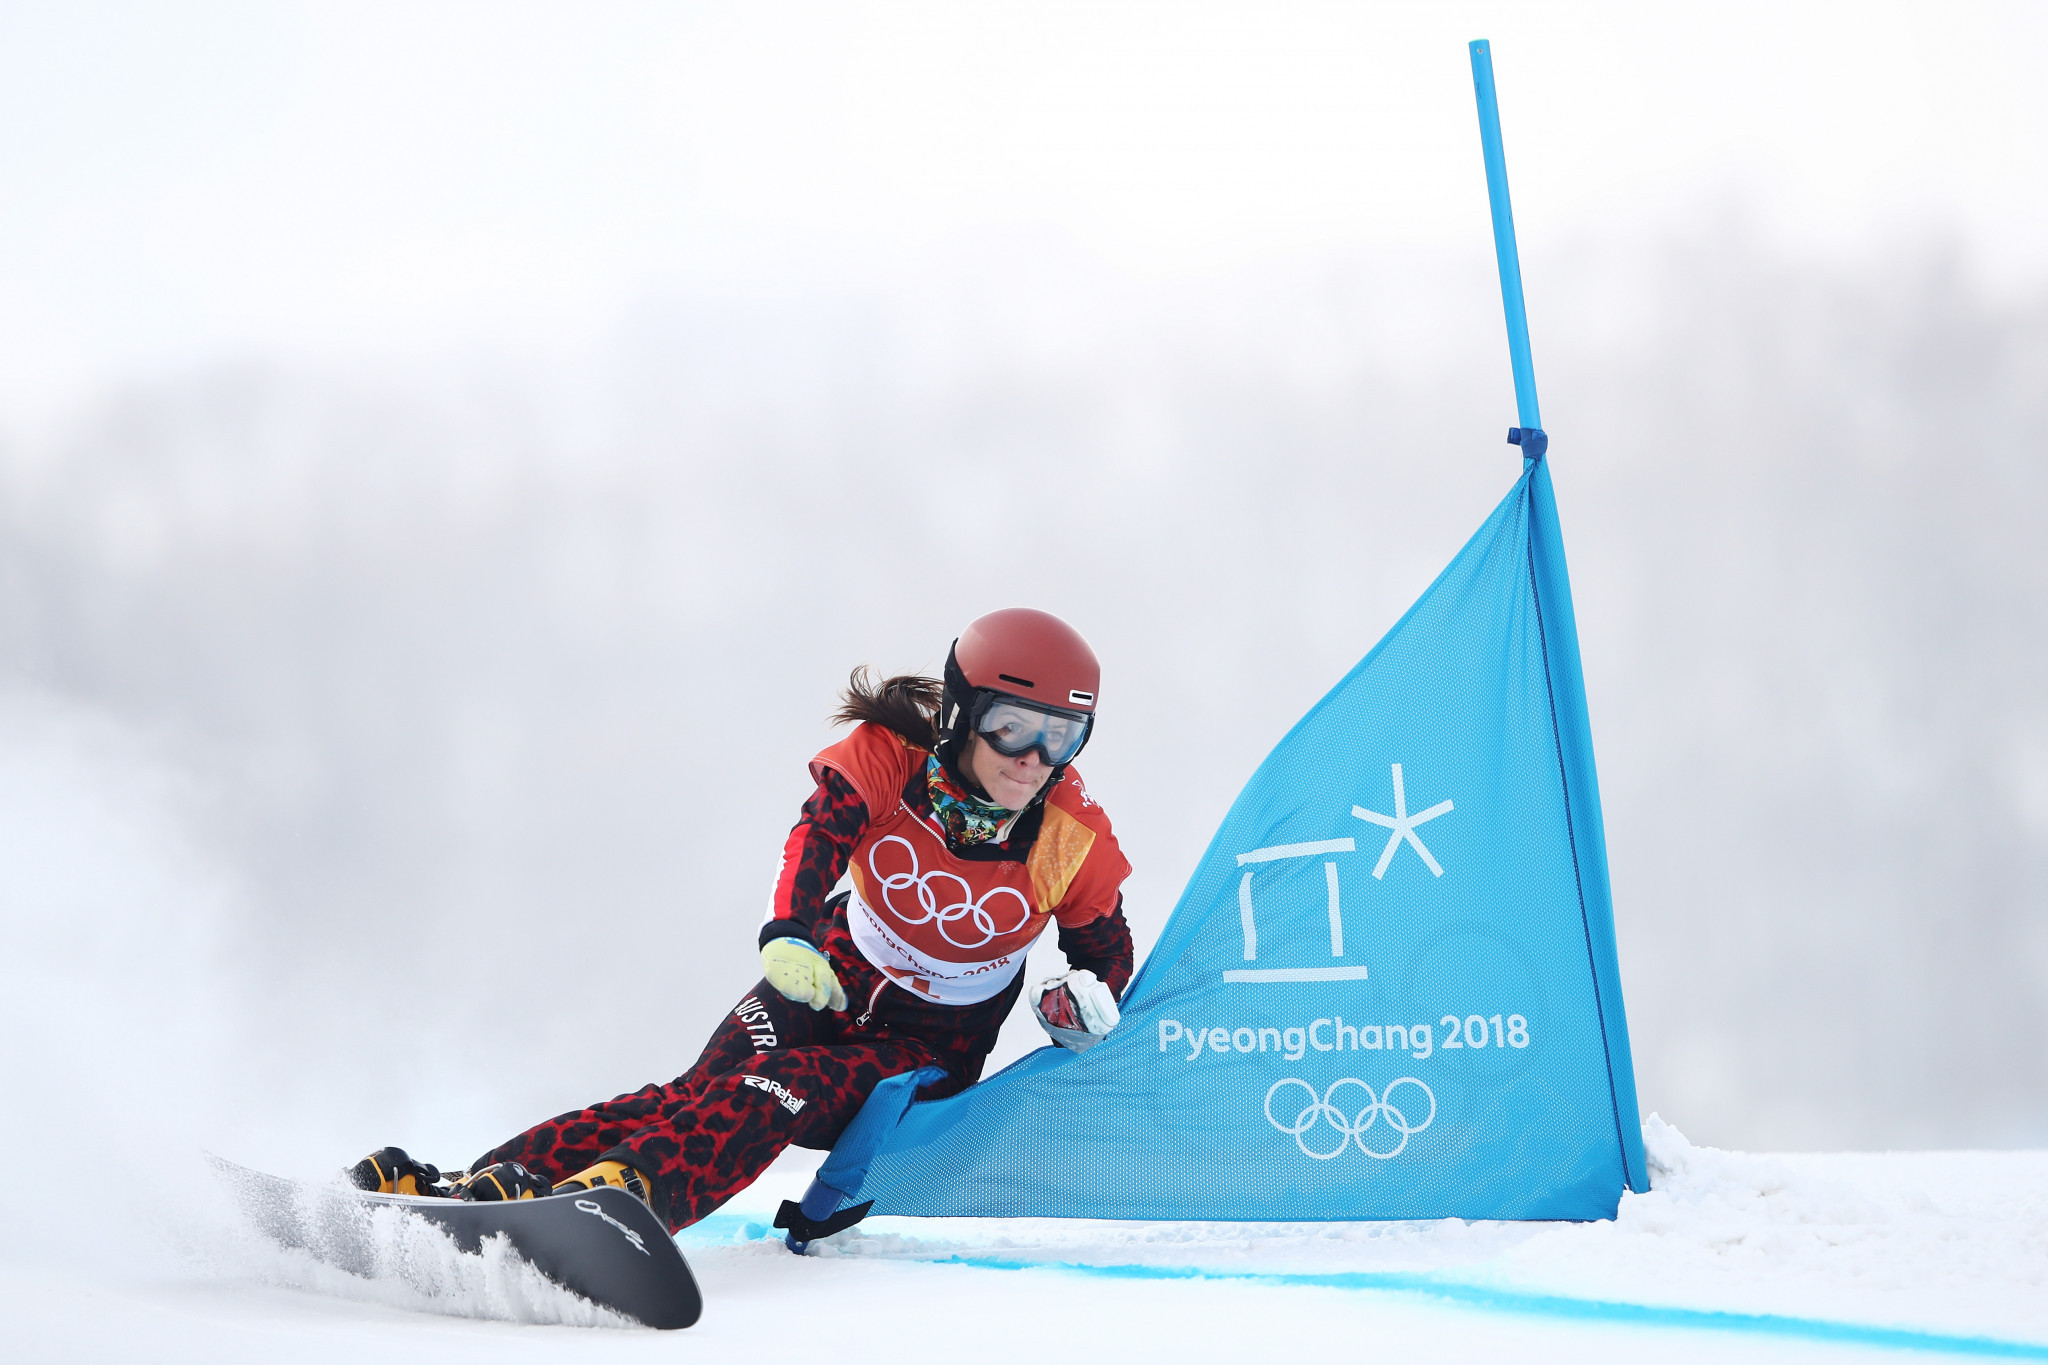 Julia Dujmovits had retired after Pyeongchang 2018 ©Getty Images